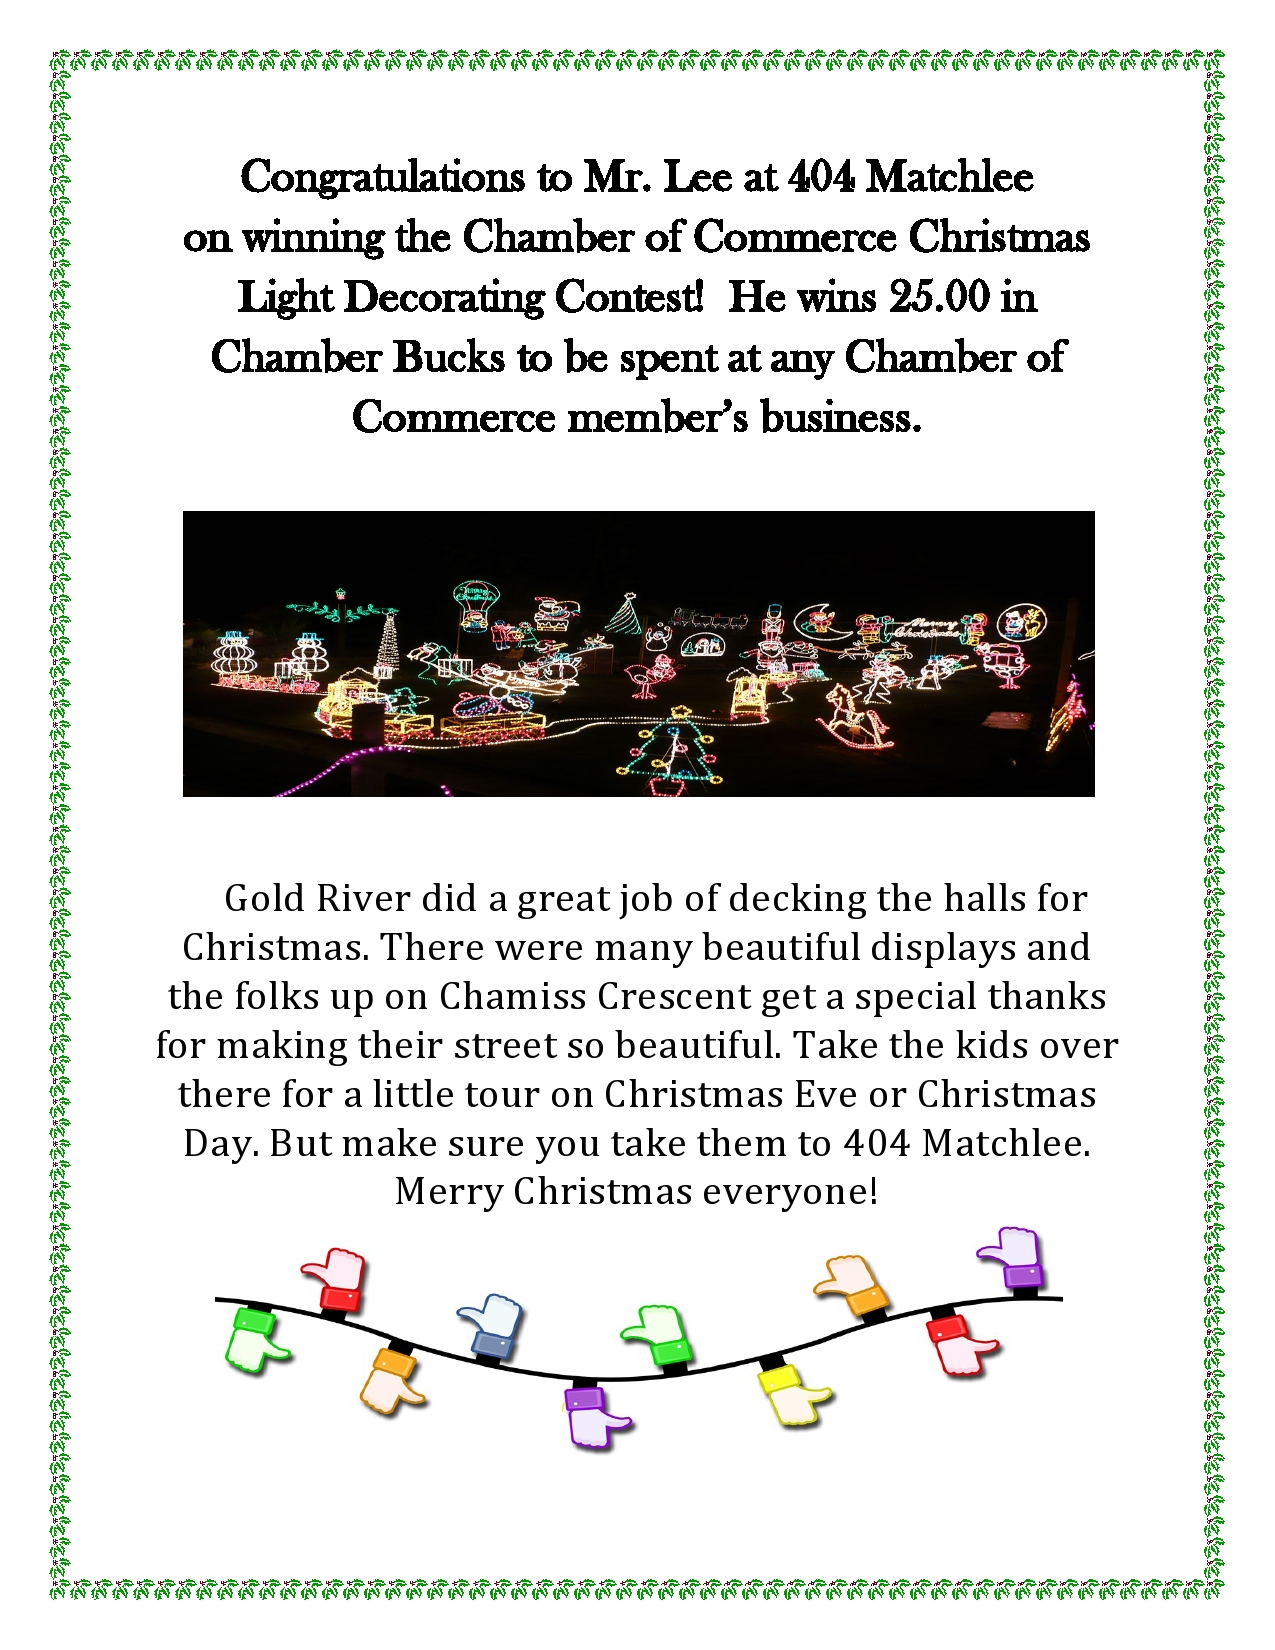 the-12-days-of-christmas-lights-decorating-contest-winner-page0001